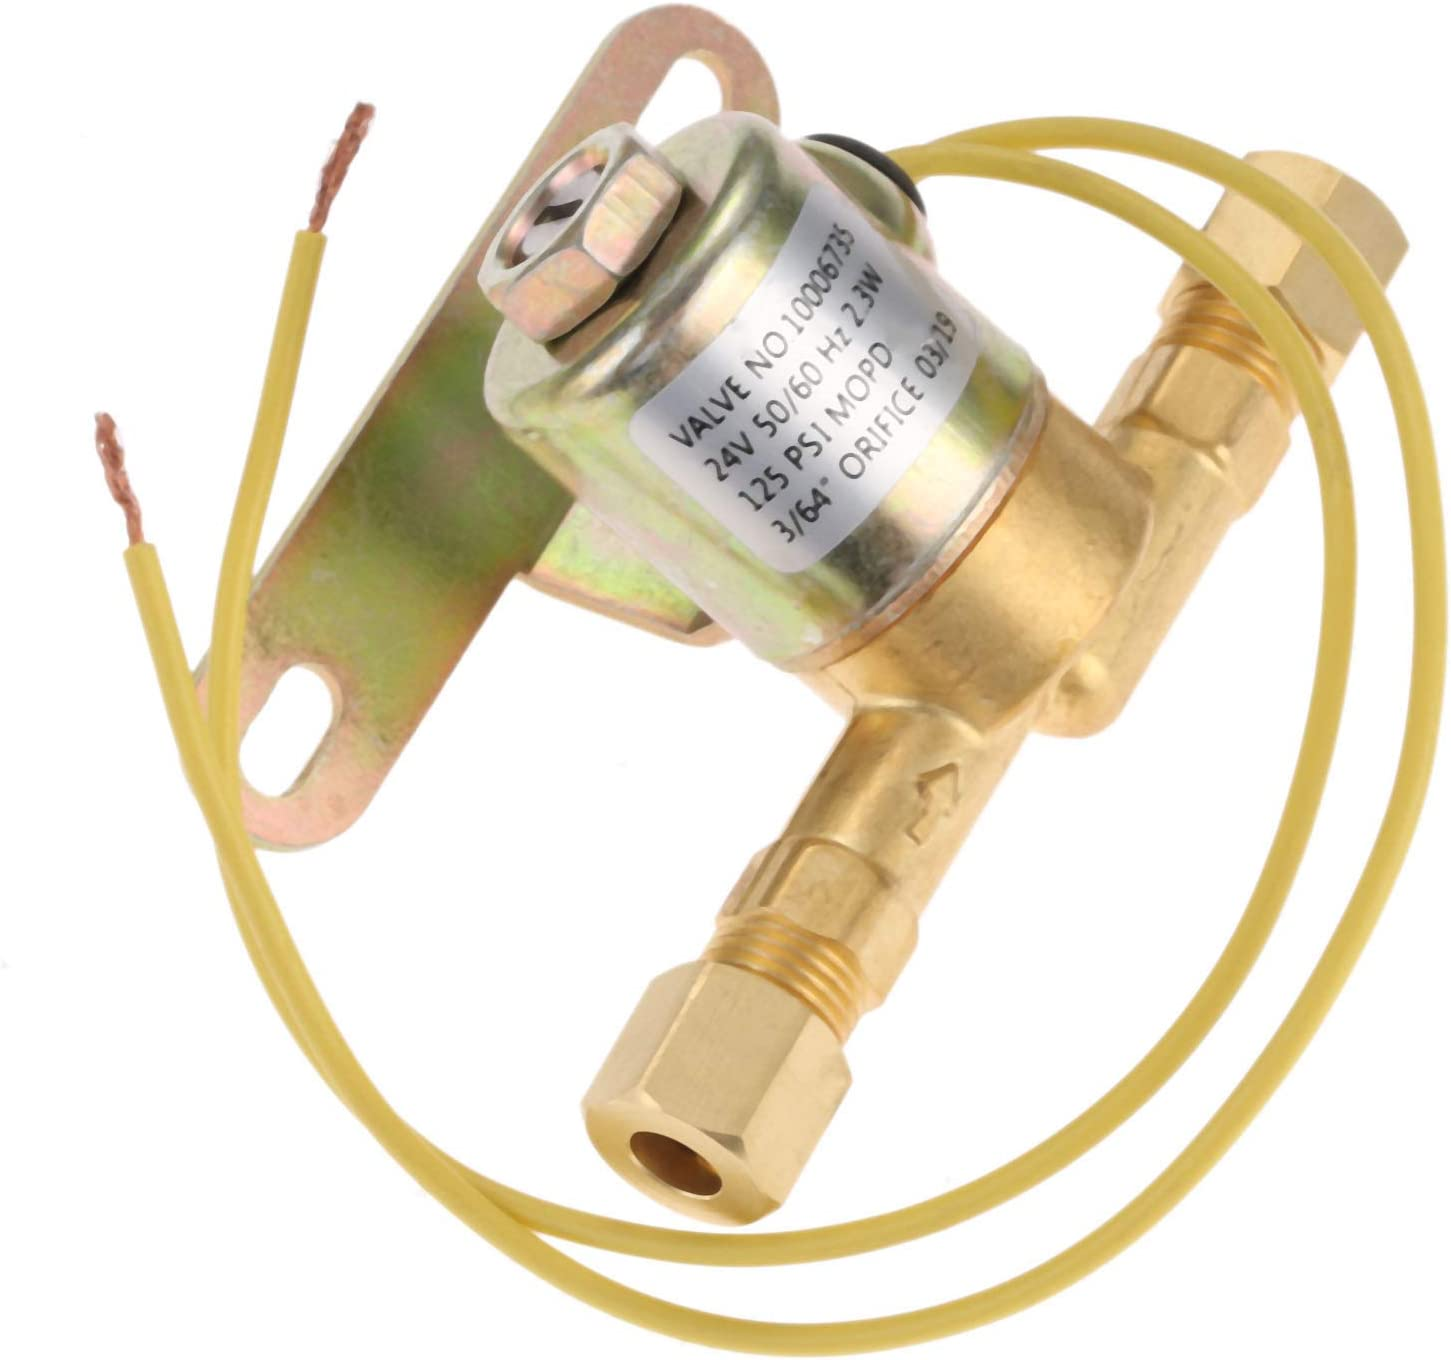 Humidifier A2012-S150 4040 Solenoid Valve, Replace Part # A2012-S118 B2035-S2 B2035-S5 B2035-S54, Replacement Part Fit for Aprilaire 112, 440, 550-A, 560-A, 568, 700, 760-A (24 V, 60 Hz AC, 125 PSI)